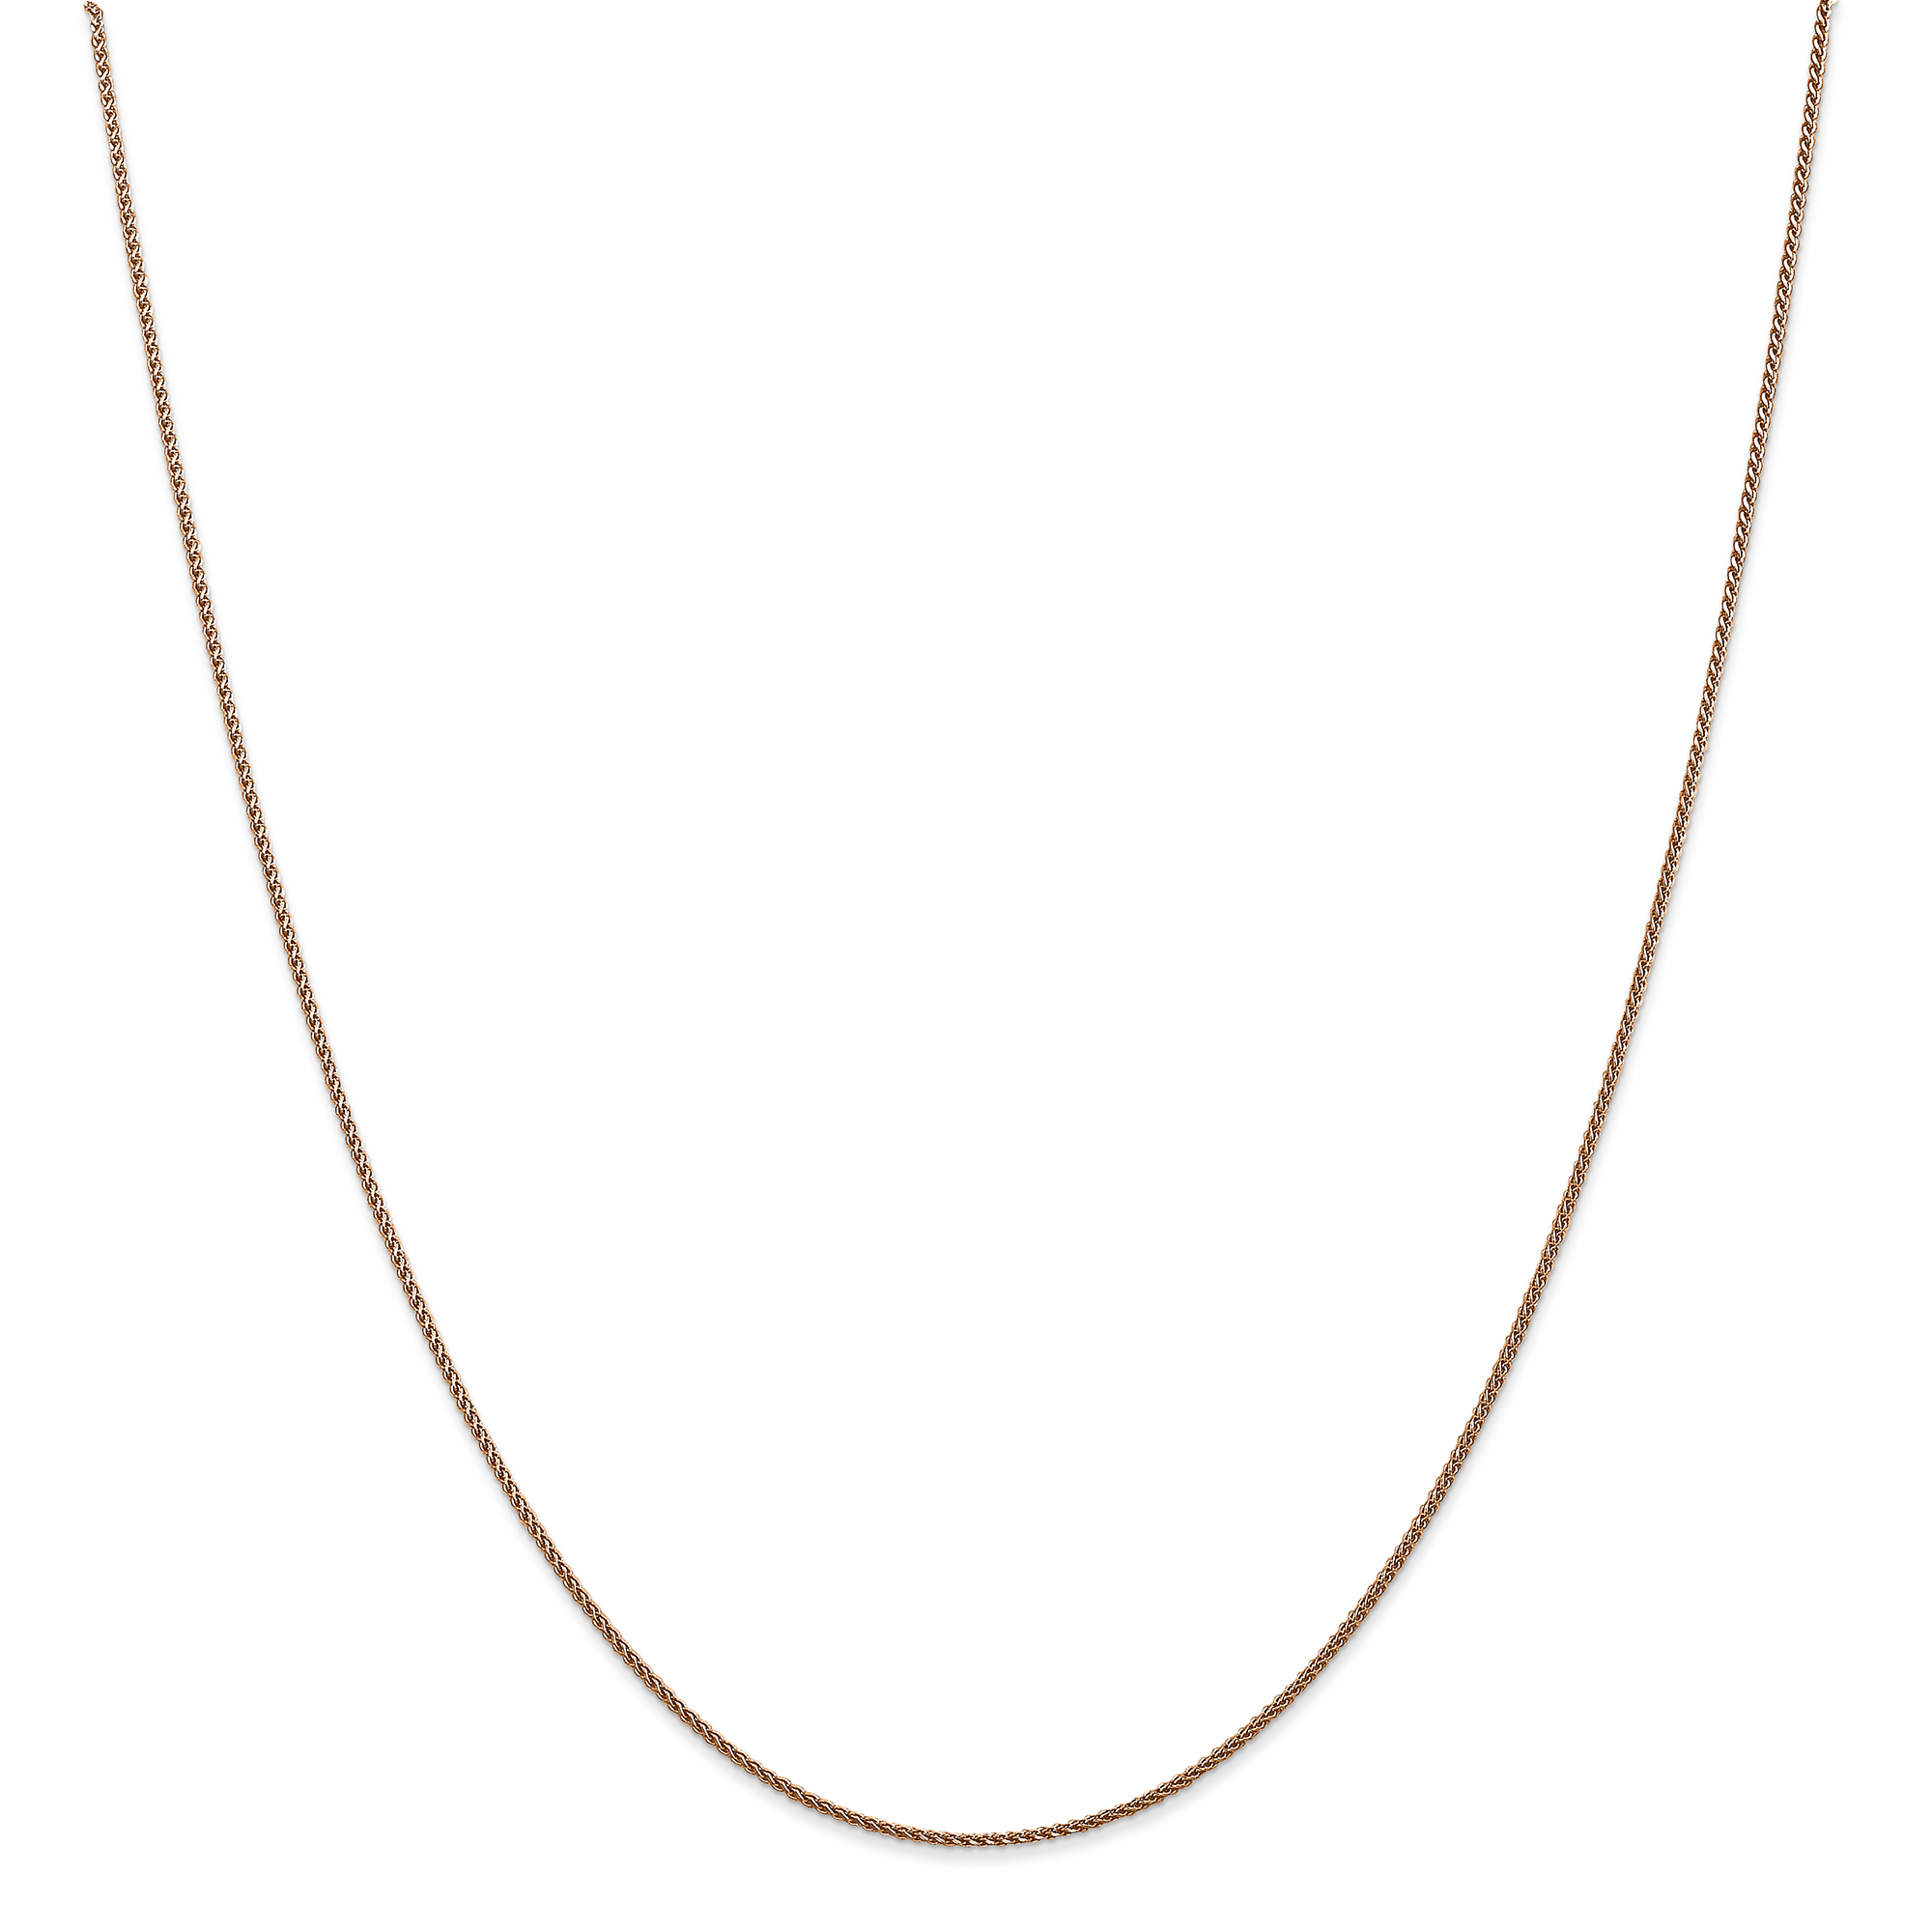 14k Rose Gold 1mm Spiga Link Wheat Chain Necklace 20 Inch Pendant Charm Spiga/wheat Fine Jewelry Gifts For Women For Her - image 5 de 5